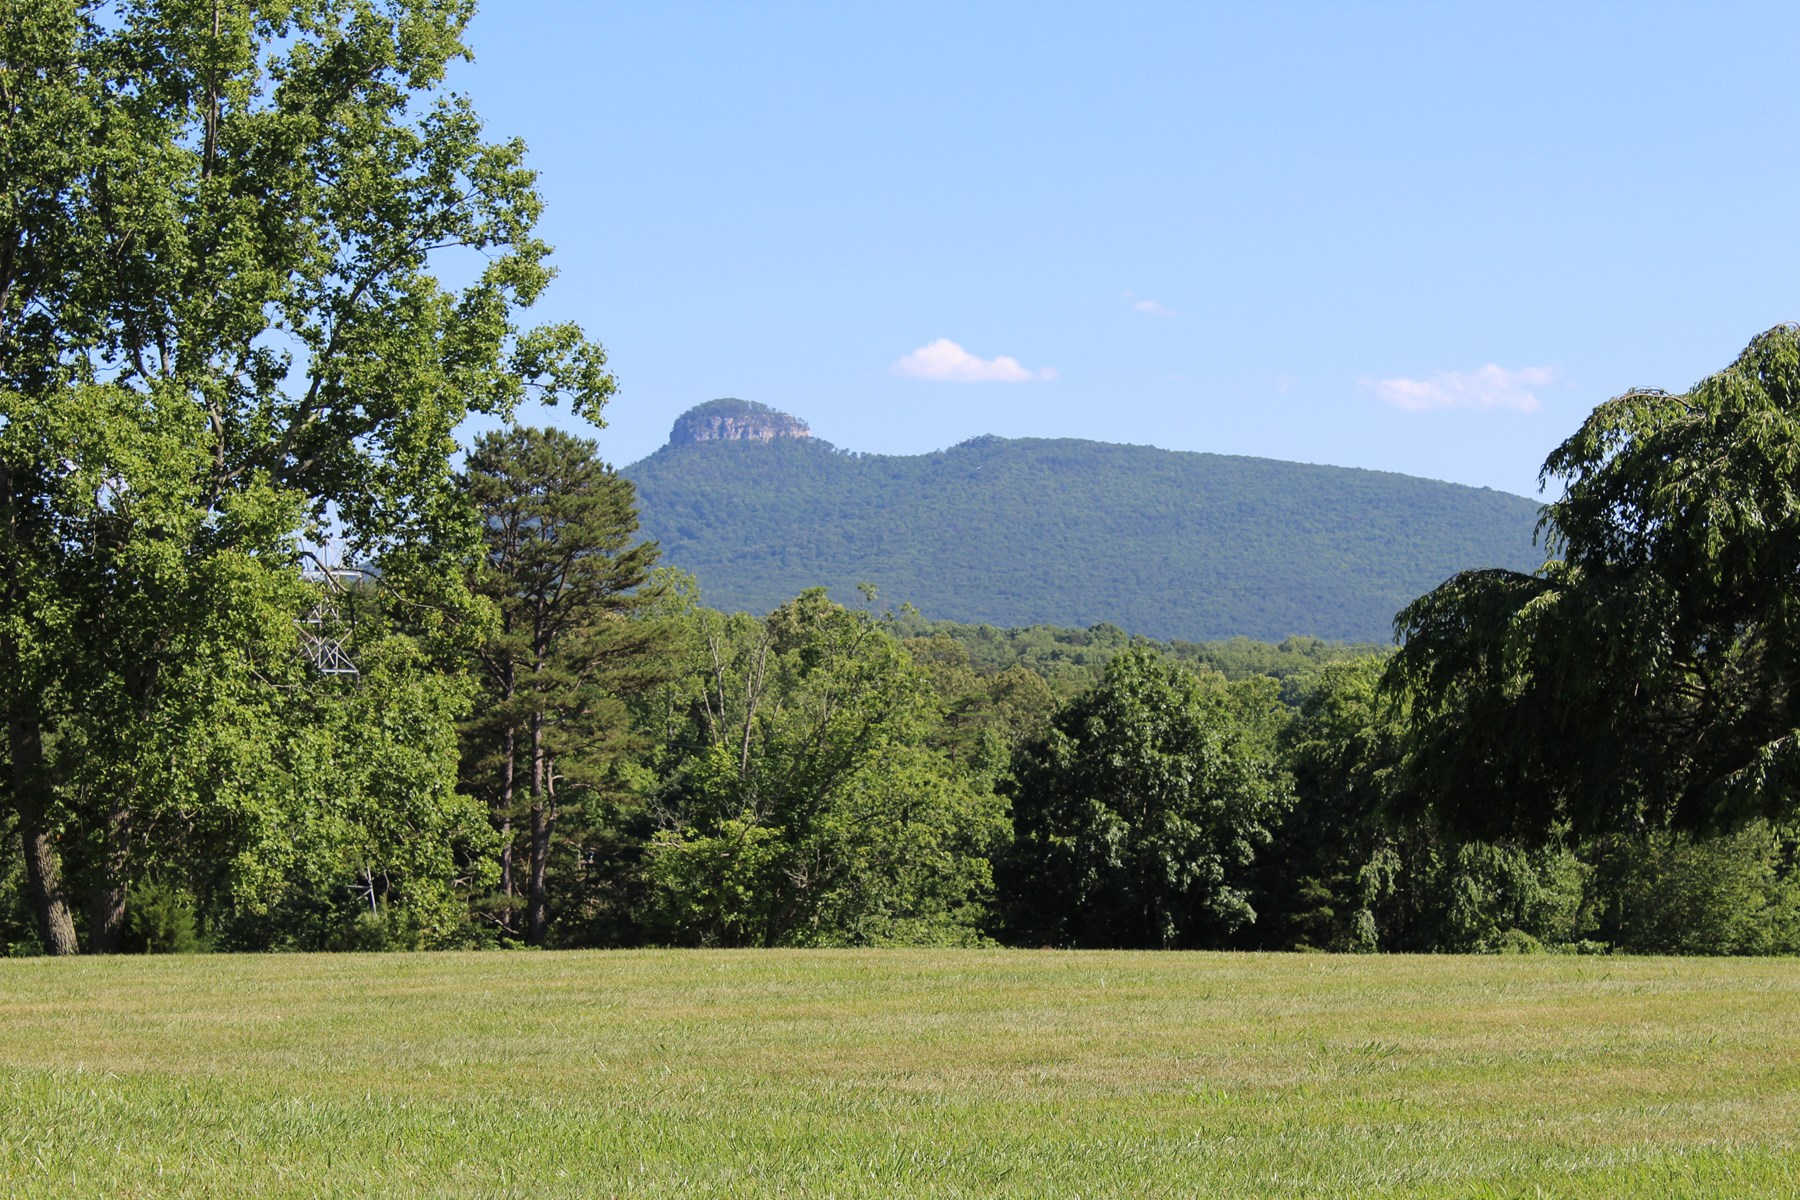 Land for sale in Pilot Mountain, NC Great building lot